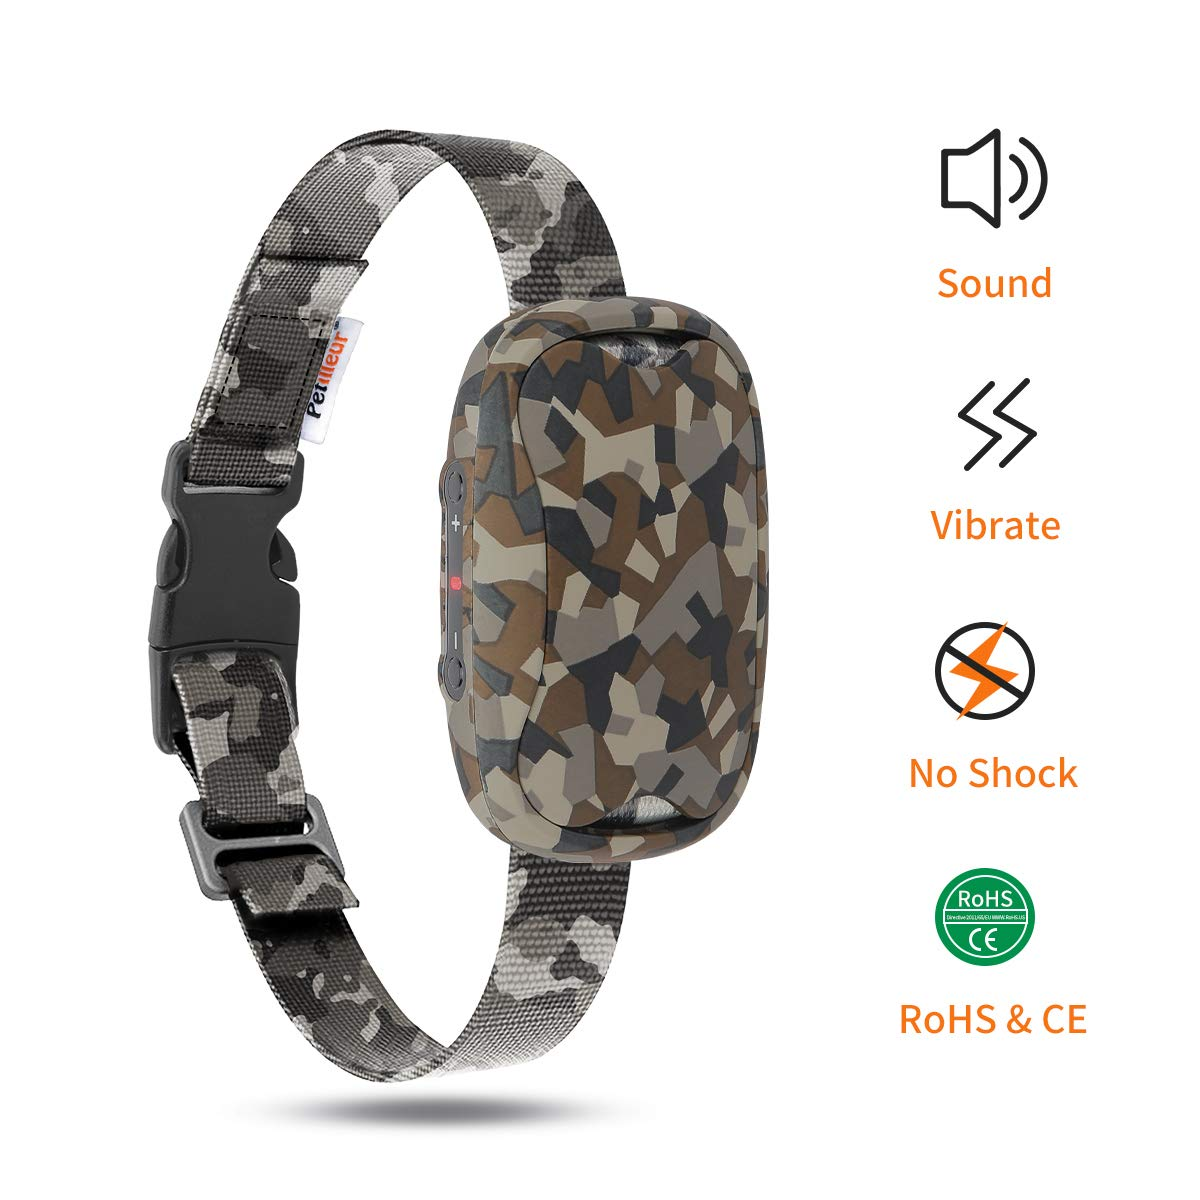 Petilleur Automatic Bark Collar [Intelligent Dog Anti-Bark Collar] Dogs Bark Control Training Collar for Small & Medium dogs, Humane Barking Stopper with Sound and Vibration (Trendy Camouflage Color)